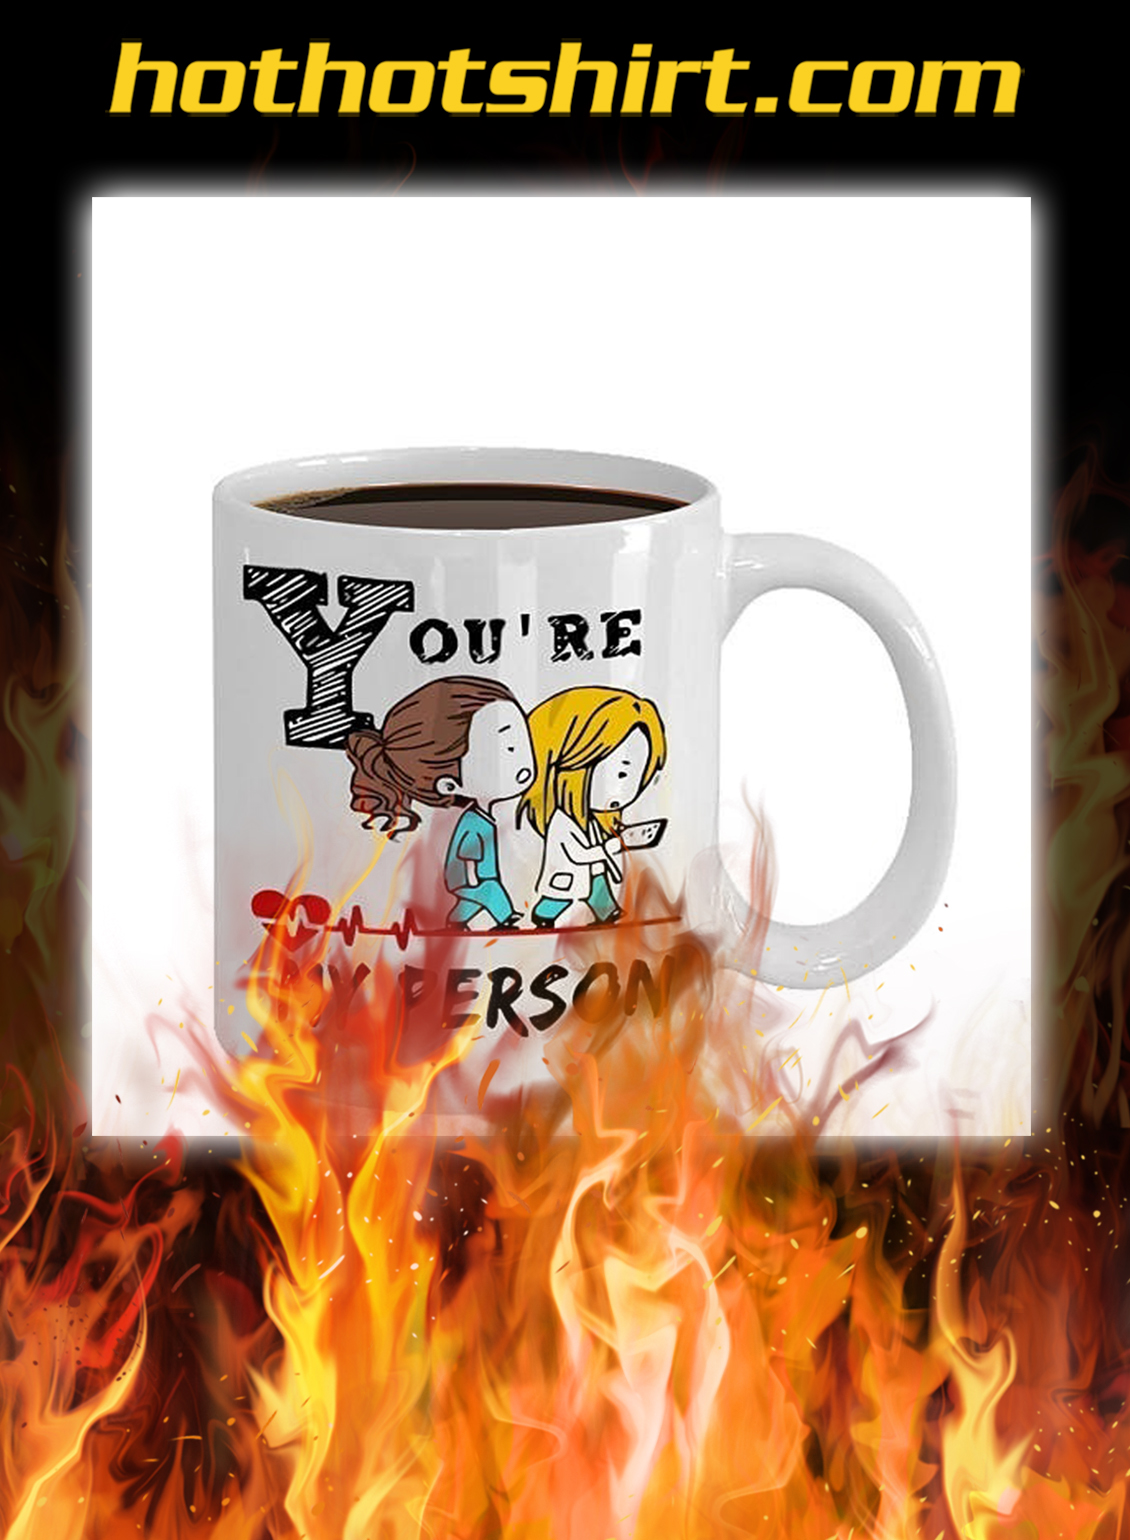 You are my person mug- pic 1